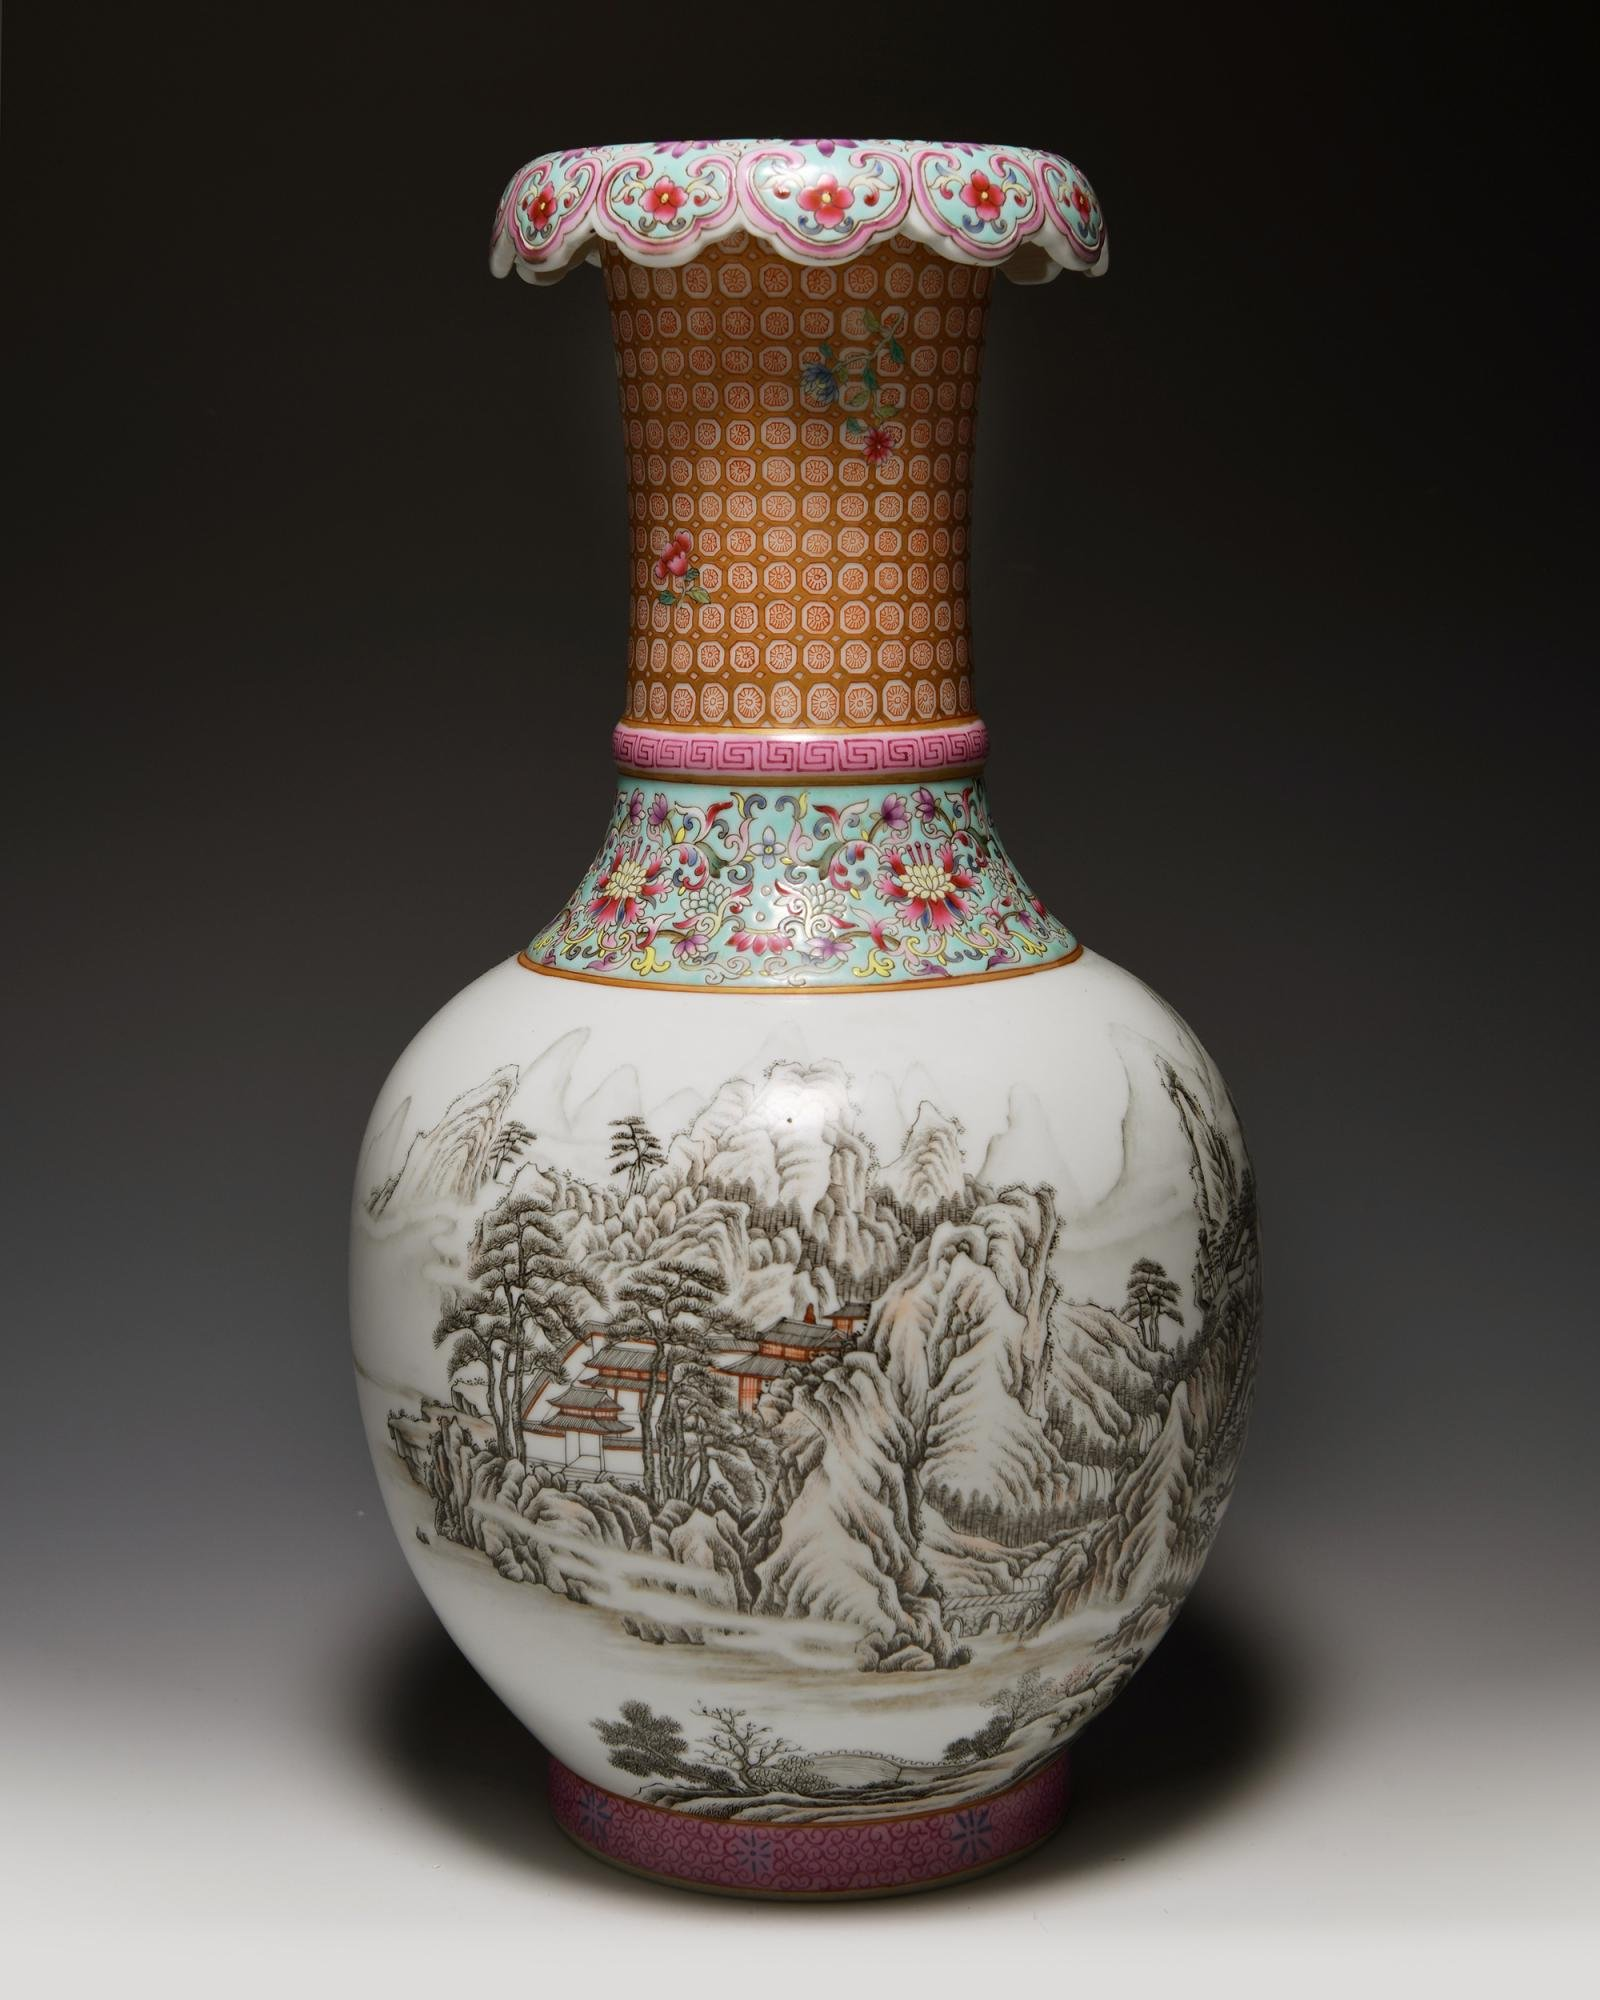 A CHINESE FAMILLE ROSE WINTER SCENE VASE, CHINA